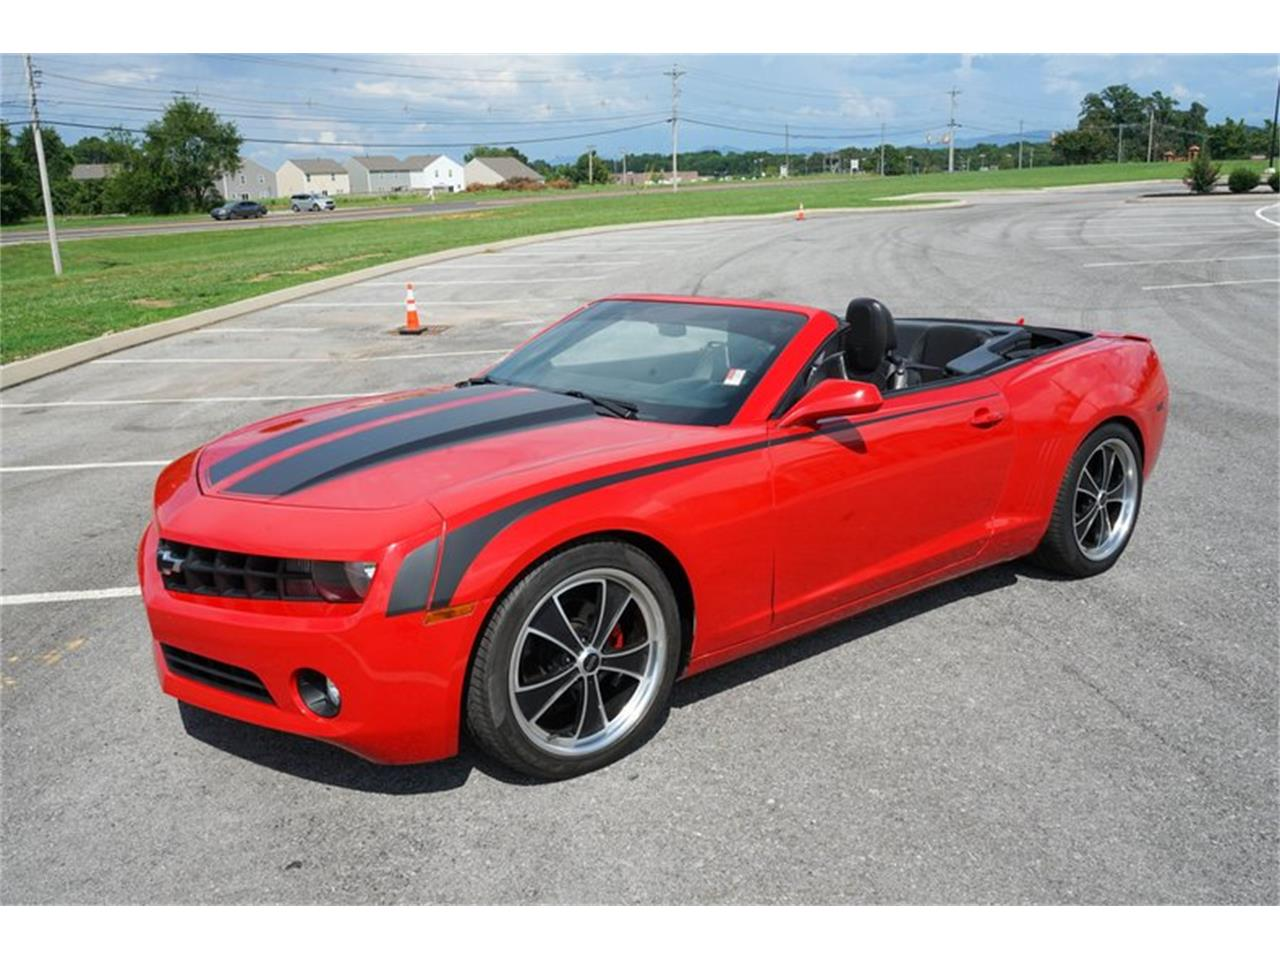 2013 Chevrolet Camaro (CC-1375184) for sale in Lenoir City, Tennessee